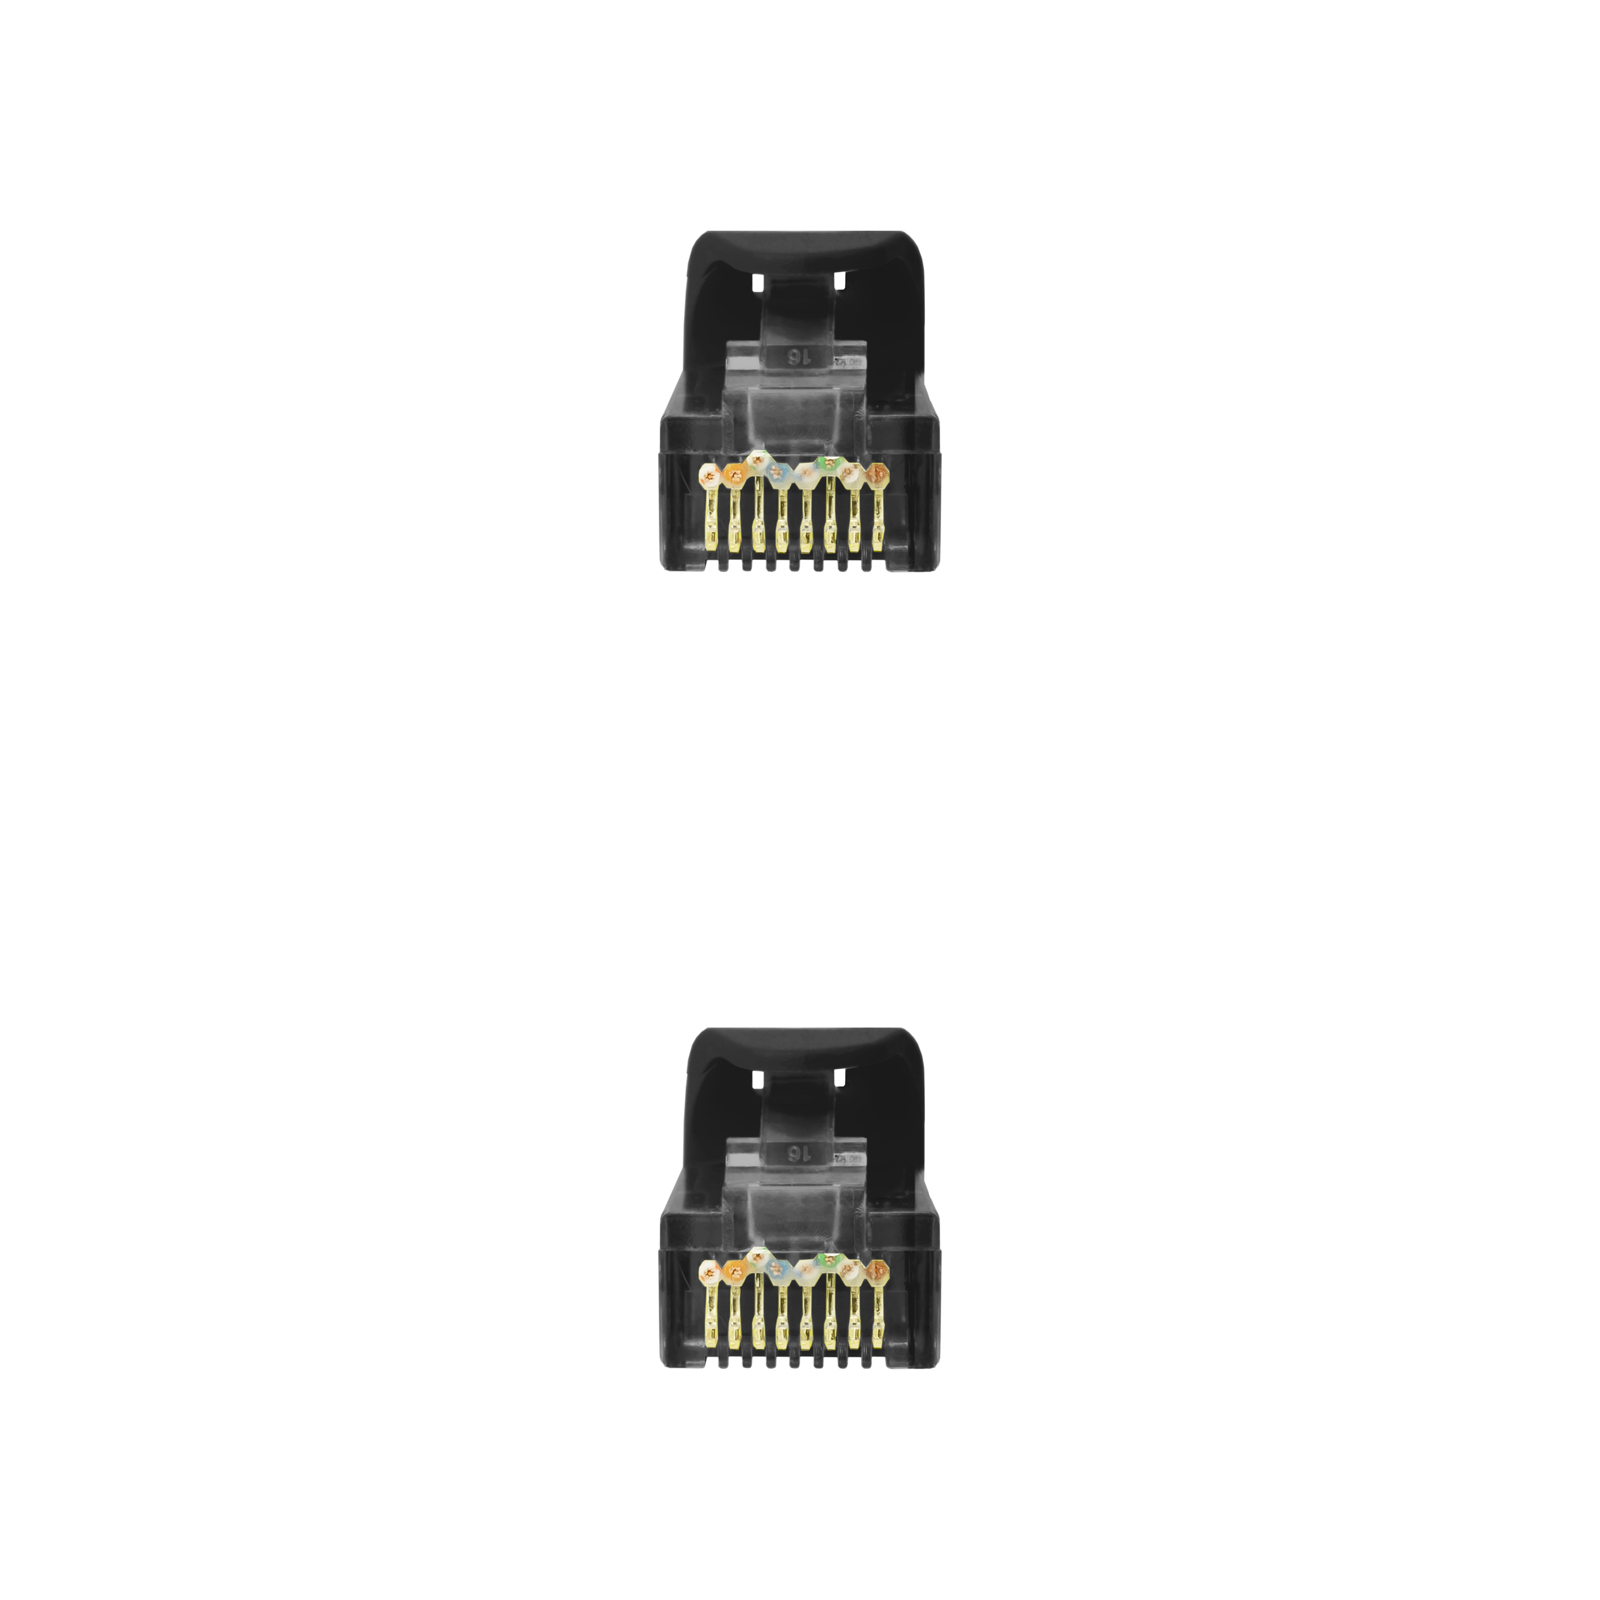 CABLE RED LATIGUILLO RJ45 LSZH CAT.6A UTP AWG24 NEGRO 0.5 M